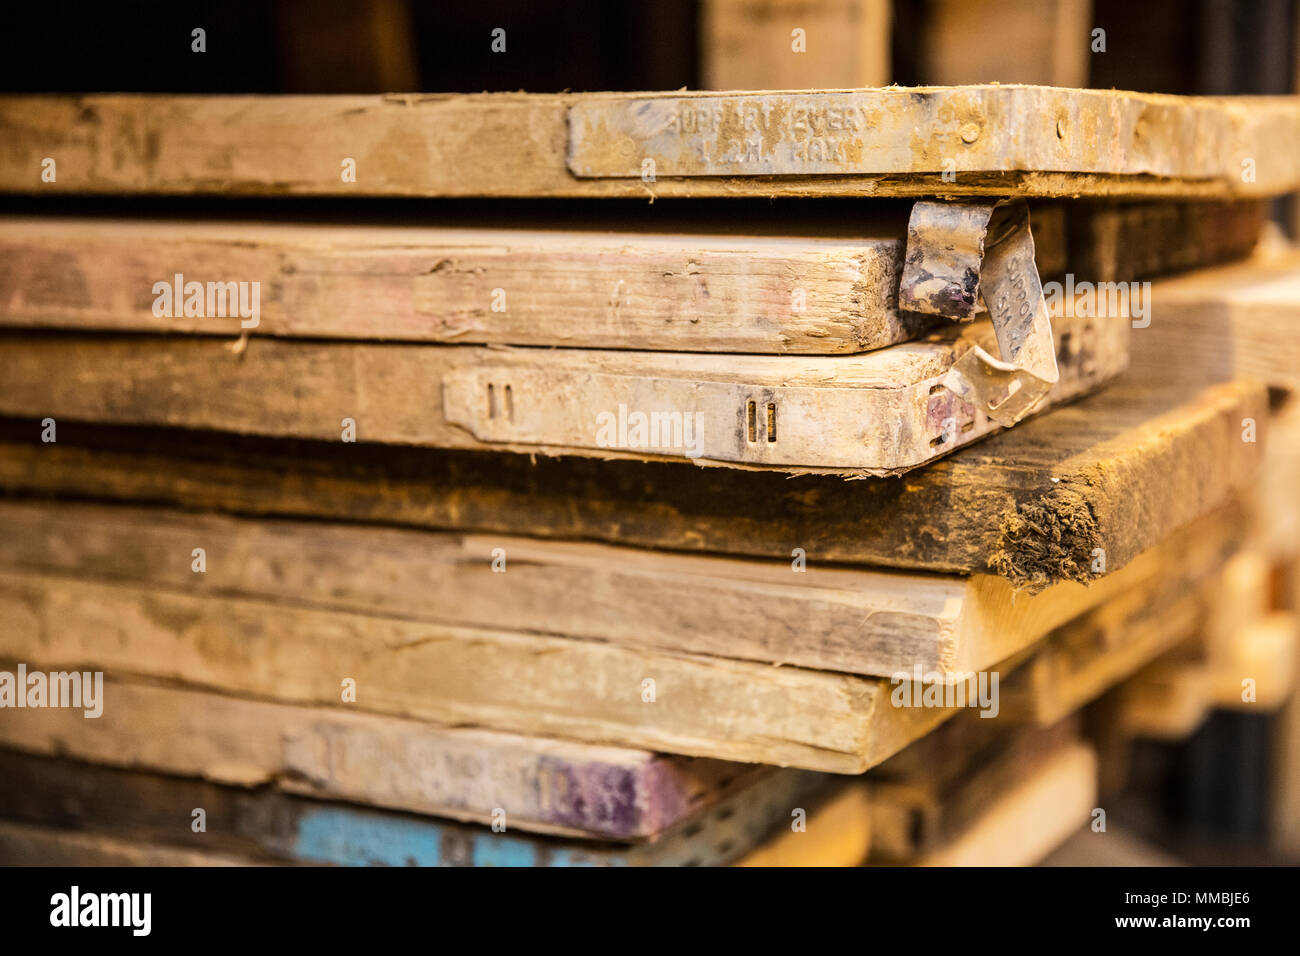 Close up of large selection of wooden planks stacked on shelves in a warehouse. - Stock Image